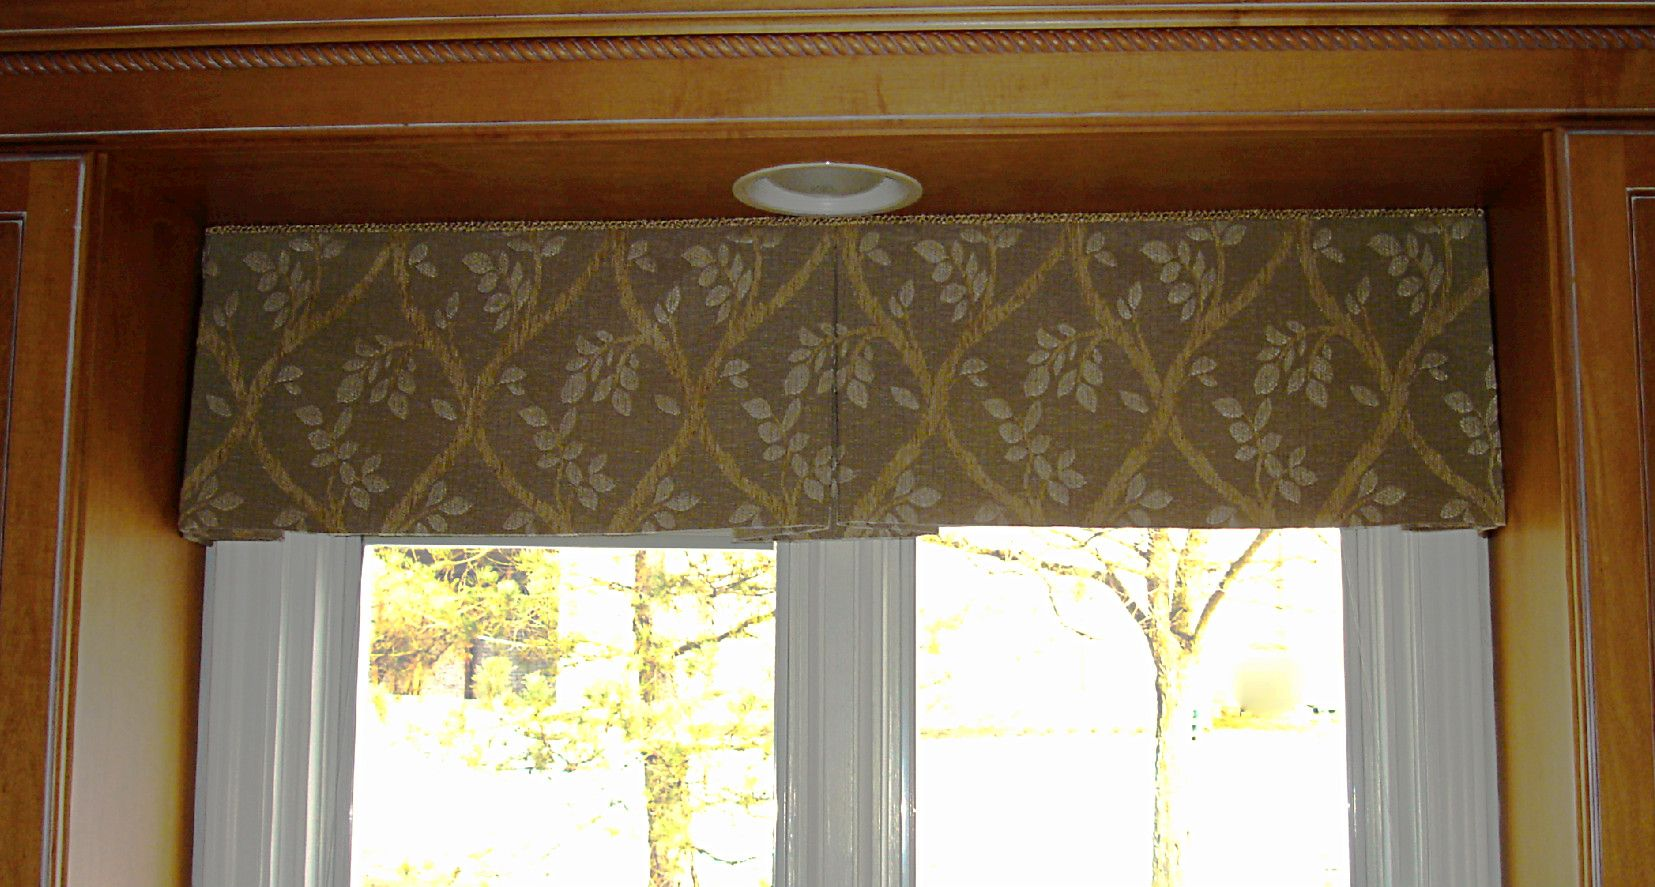 Free Pleated Valance Patterns | Valance In Window Valances U2013 Compare  Prices, Read Reviews And